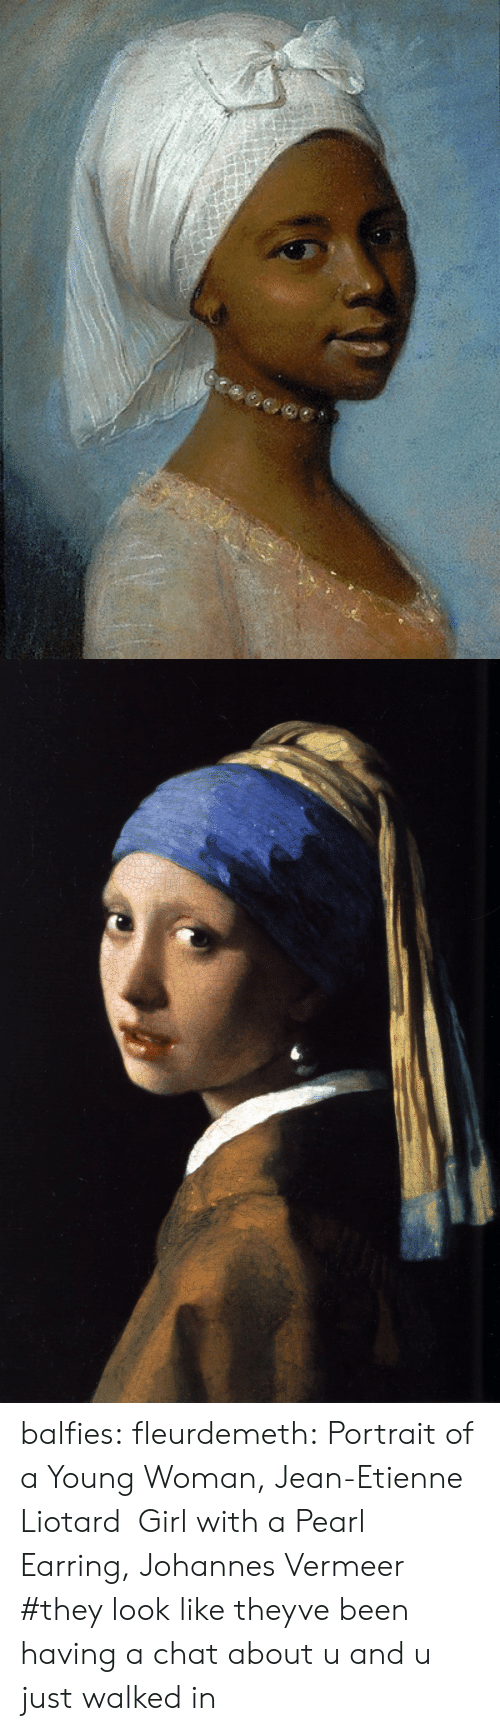 pearl: balfies:  fleurdemeth:  Portrait of a Young Woman, Jean-Etienne Liotard  Girl with a Pearl Earring, Johannes Vermeer    #they look like theyve been having a chat about u and u just walked in